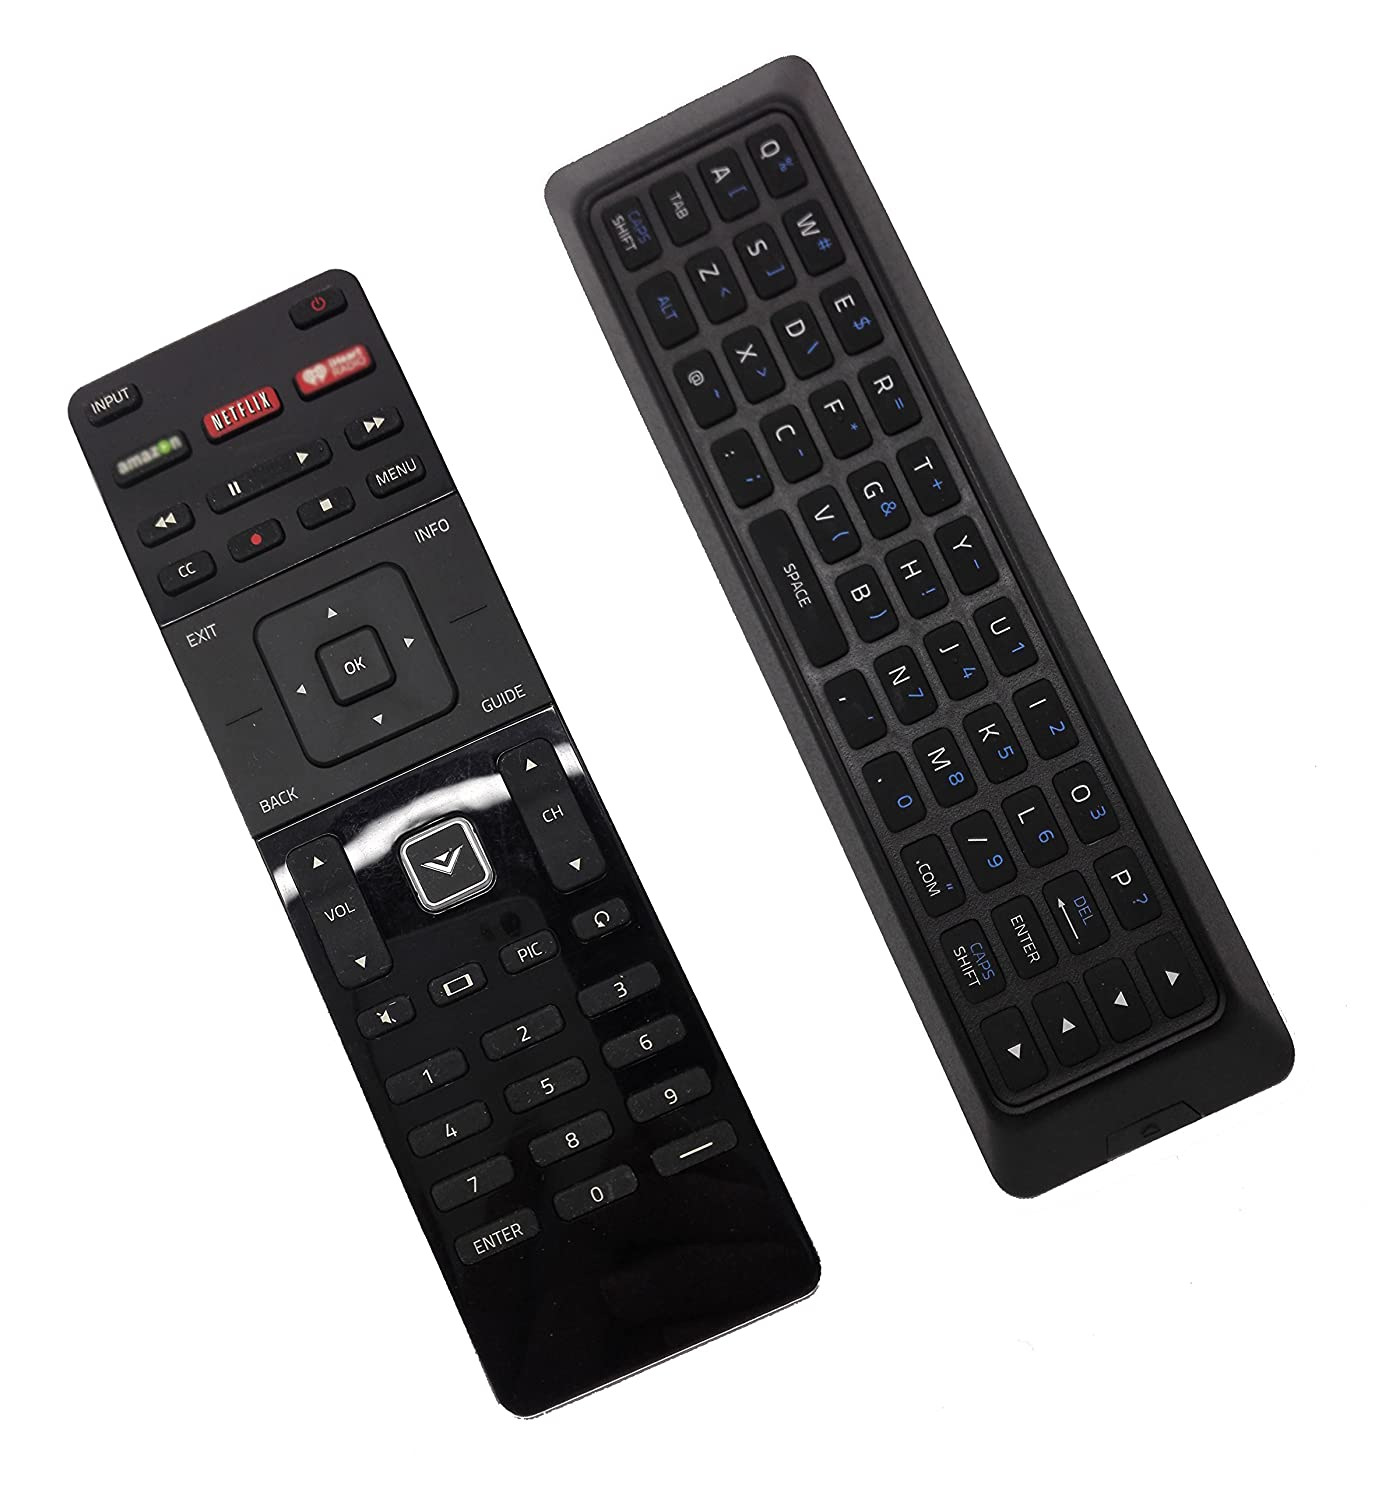 econtrolly New Remote XRT500 with QWERTY Keyborad Blacklight for VIZIO TV M322I-B1 M422I-B1 M602I-B3 M602I-B3 M602IBE M652IB2 D24-D1